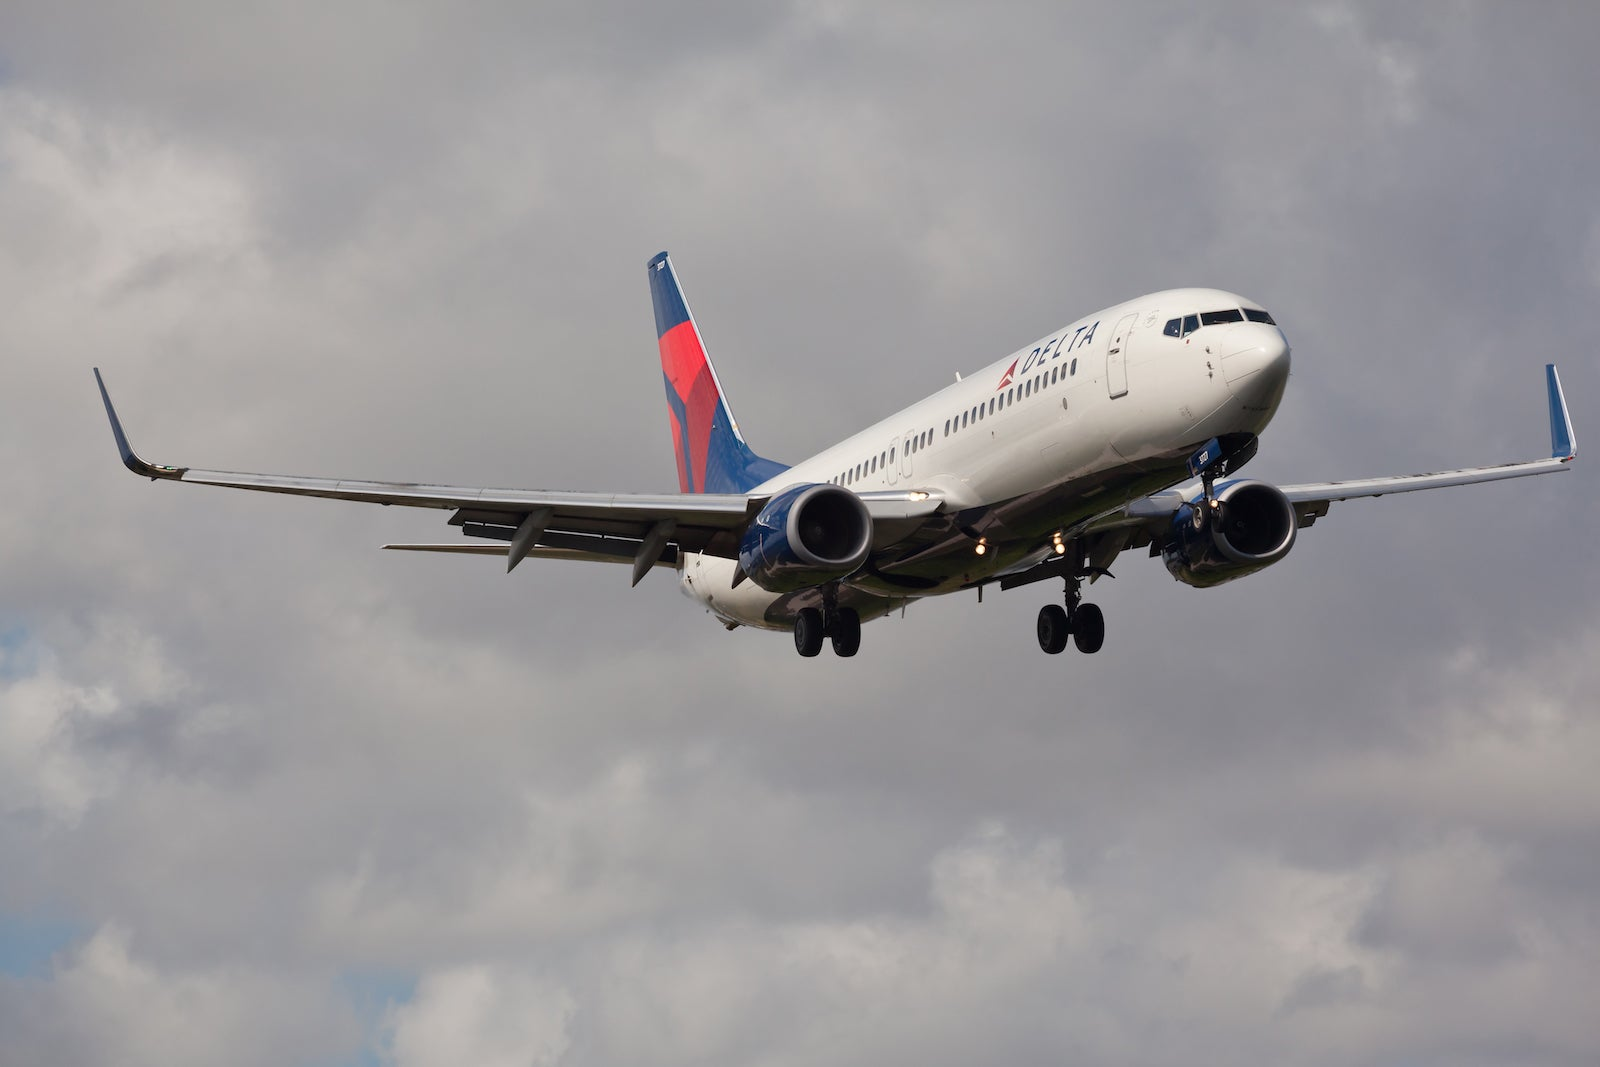 Delta deals: Massive warm-weather domestic sale from 4,500 miles one-way and round-trip to Europe from 22,000 miles